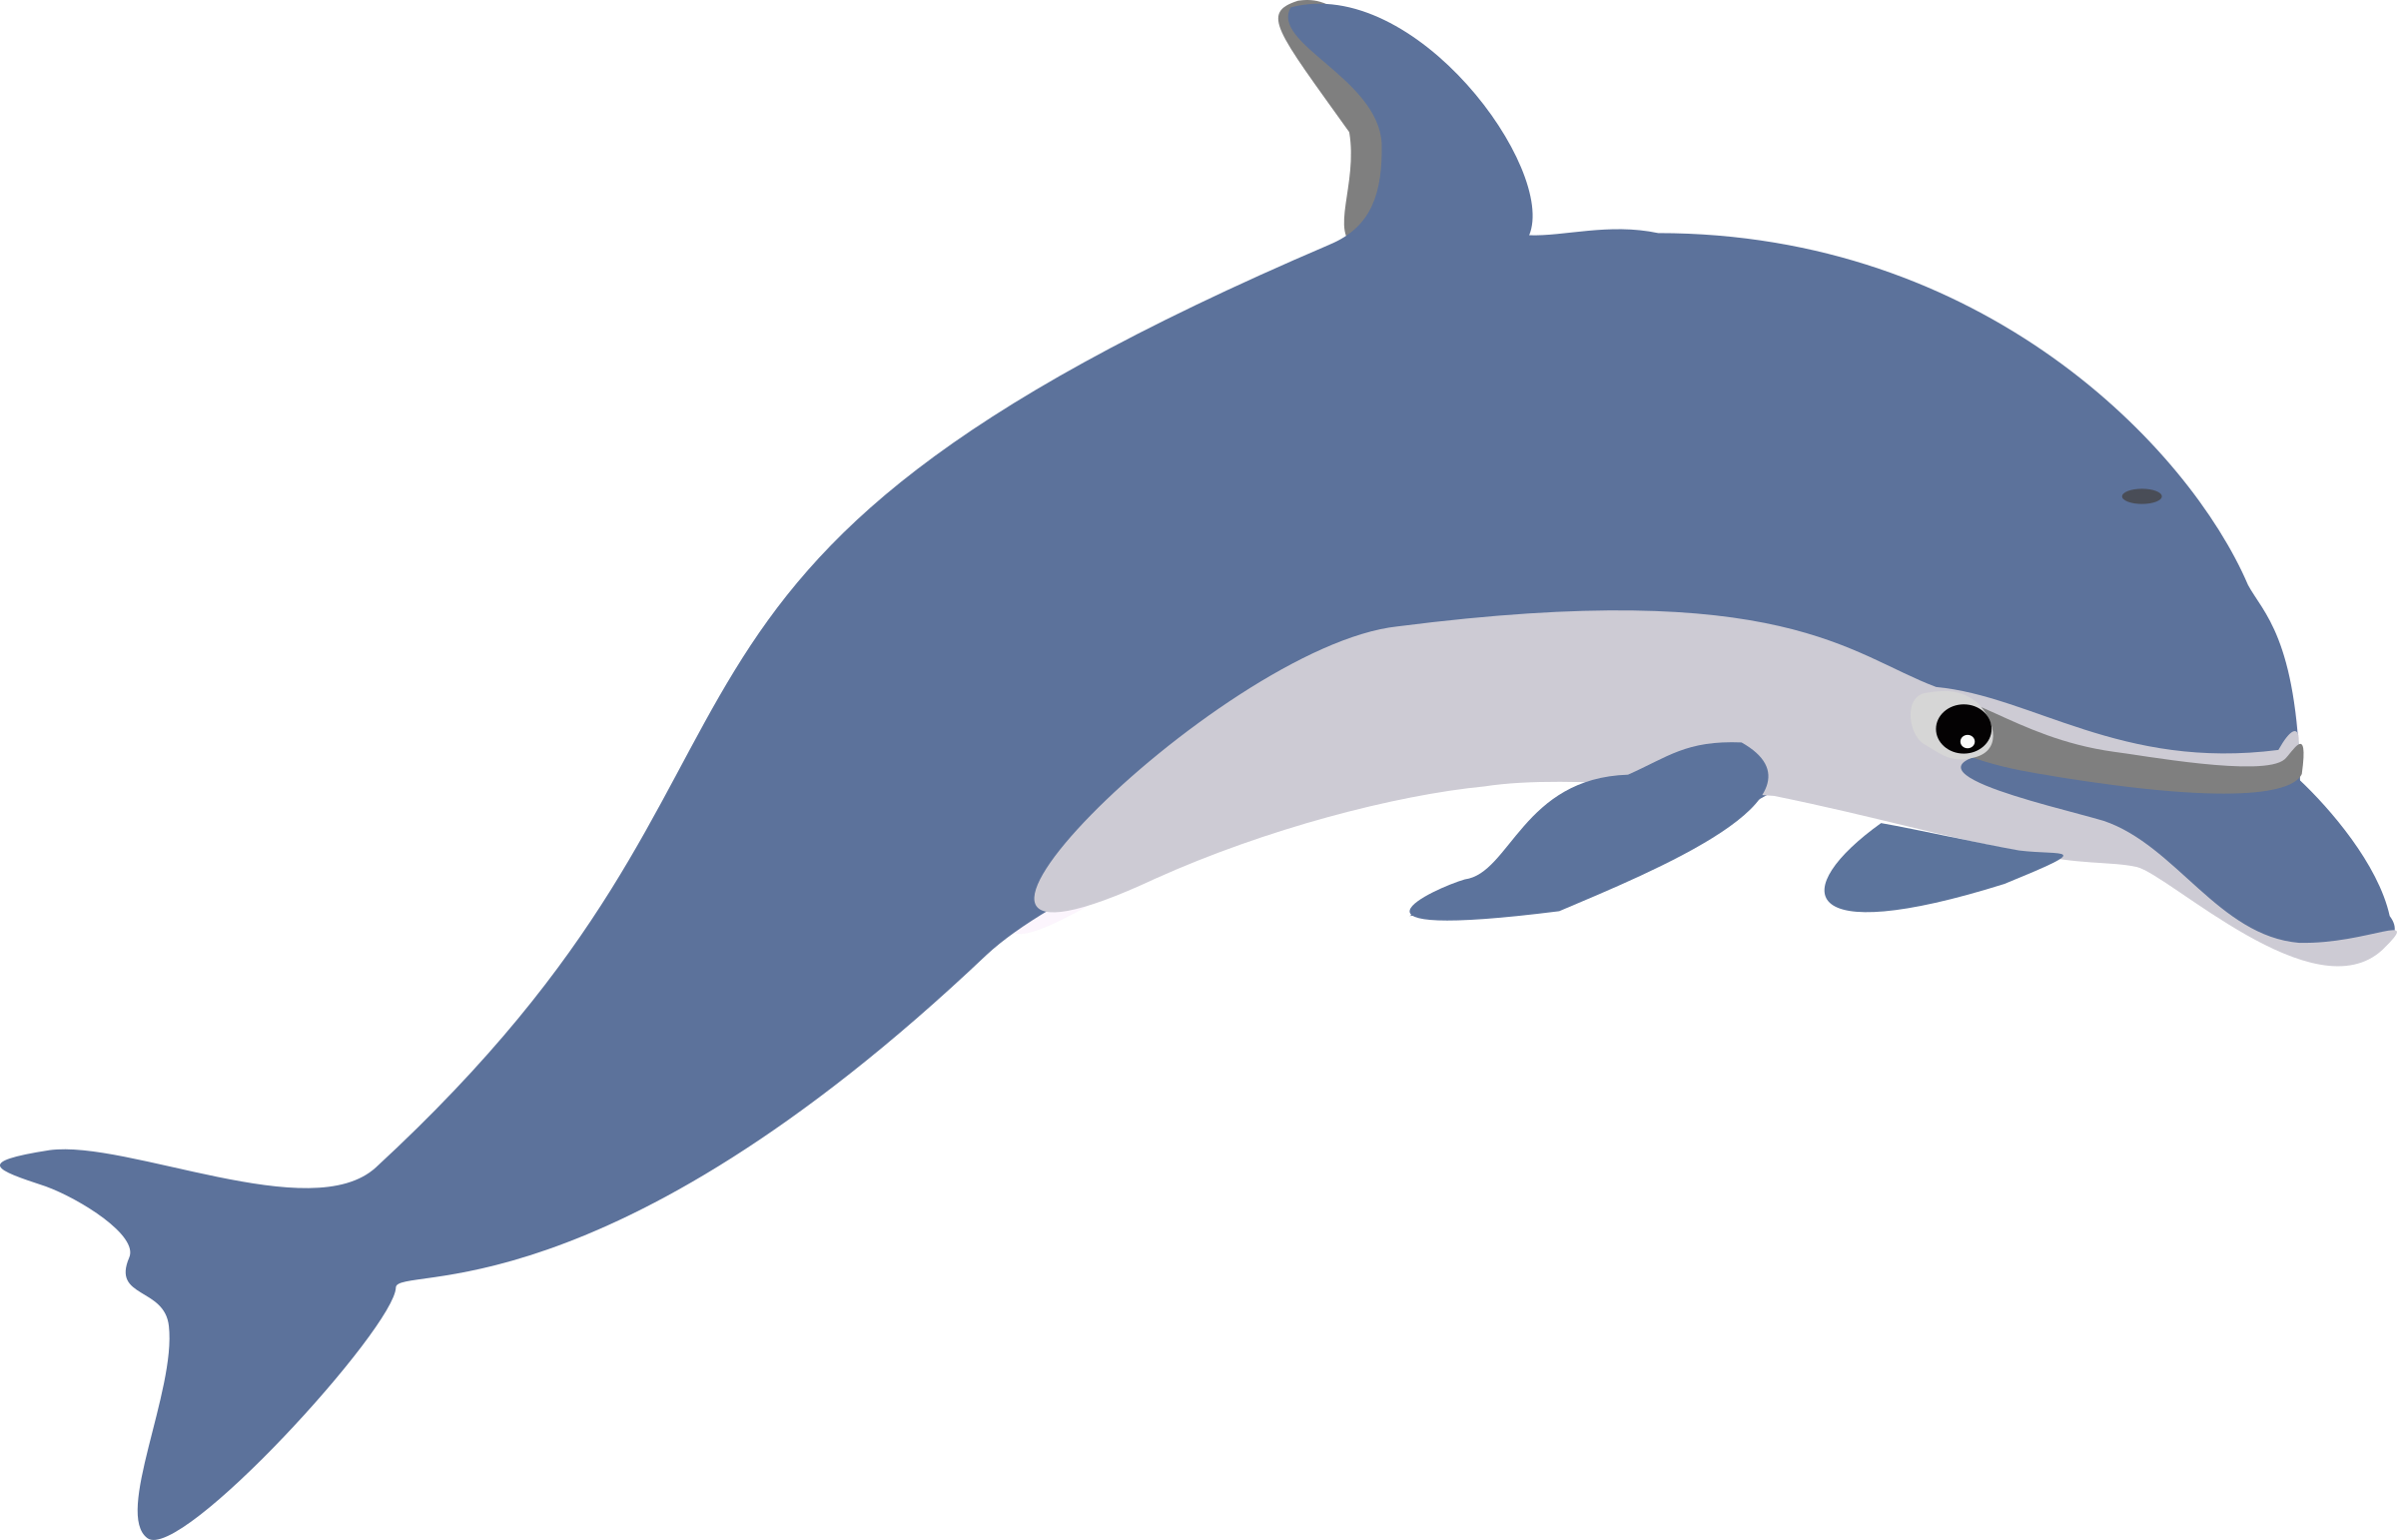 Another dolphin by emeza